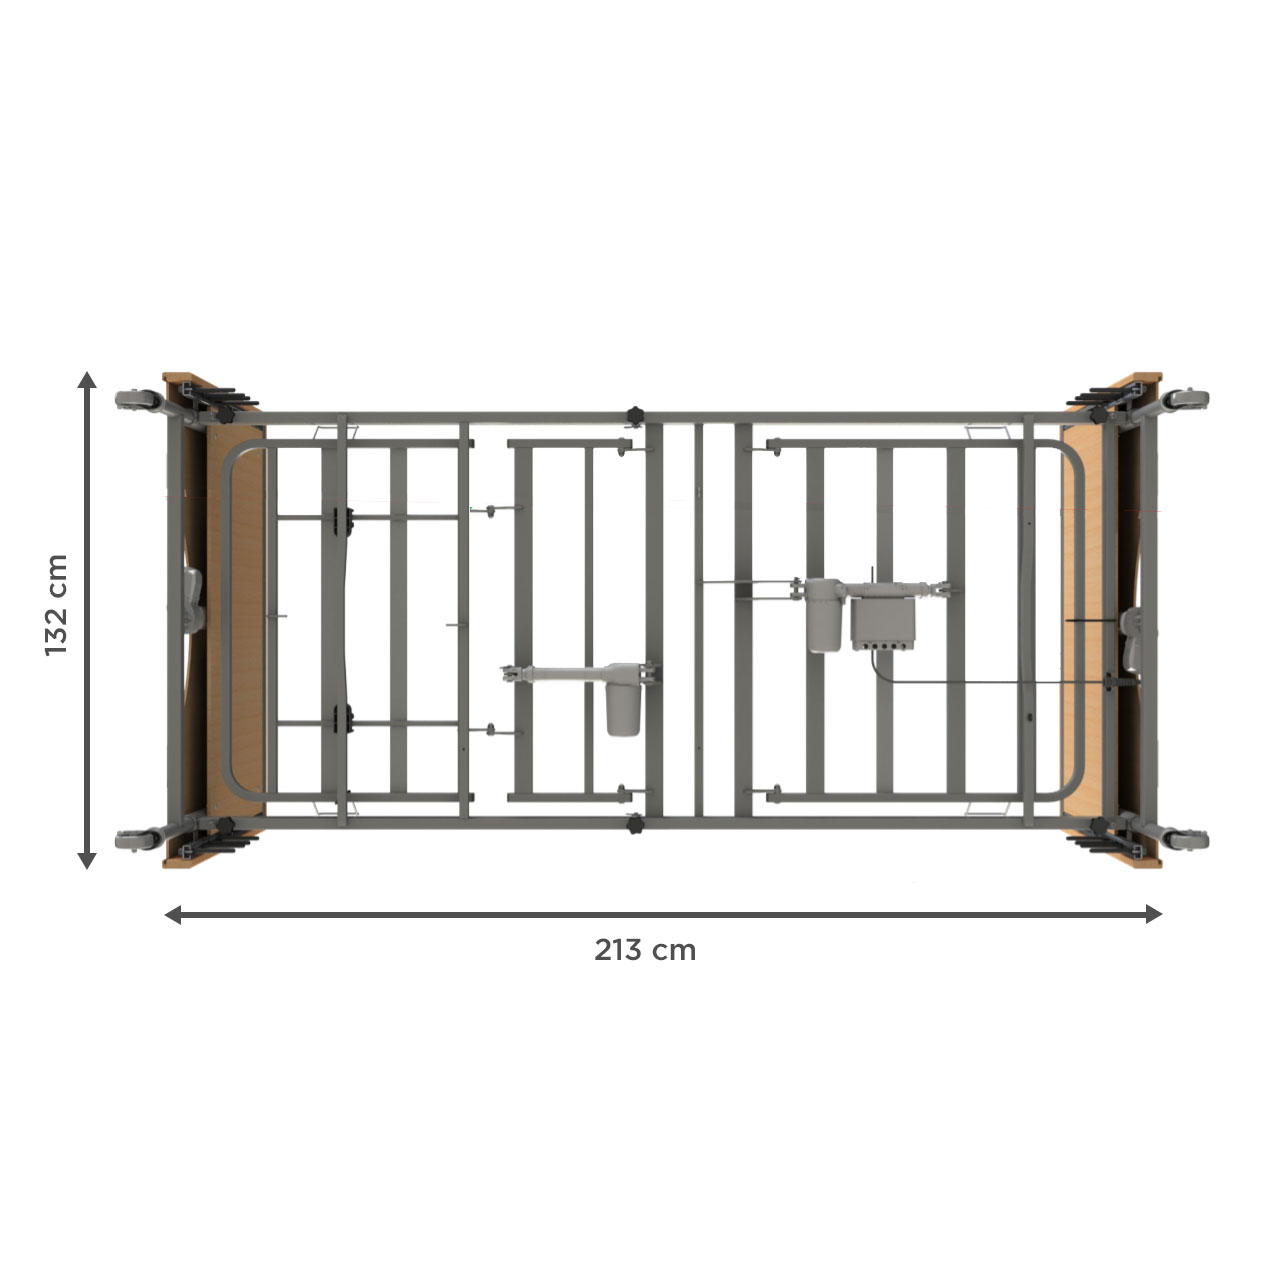 bariatric-care-bed-dimensions